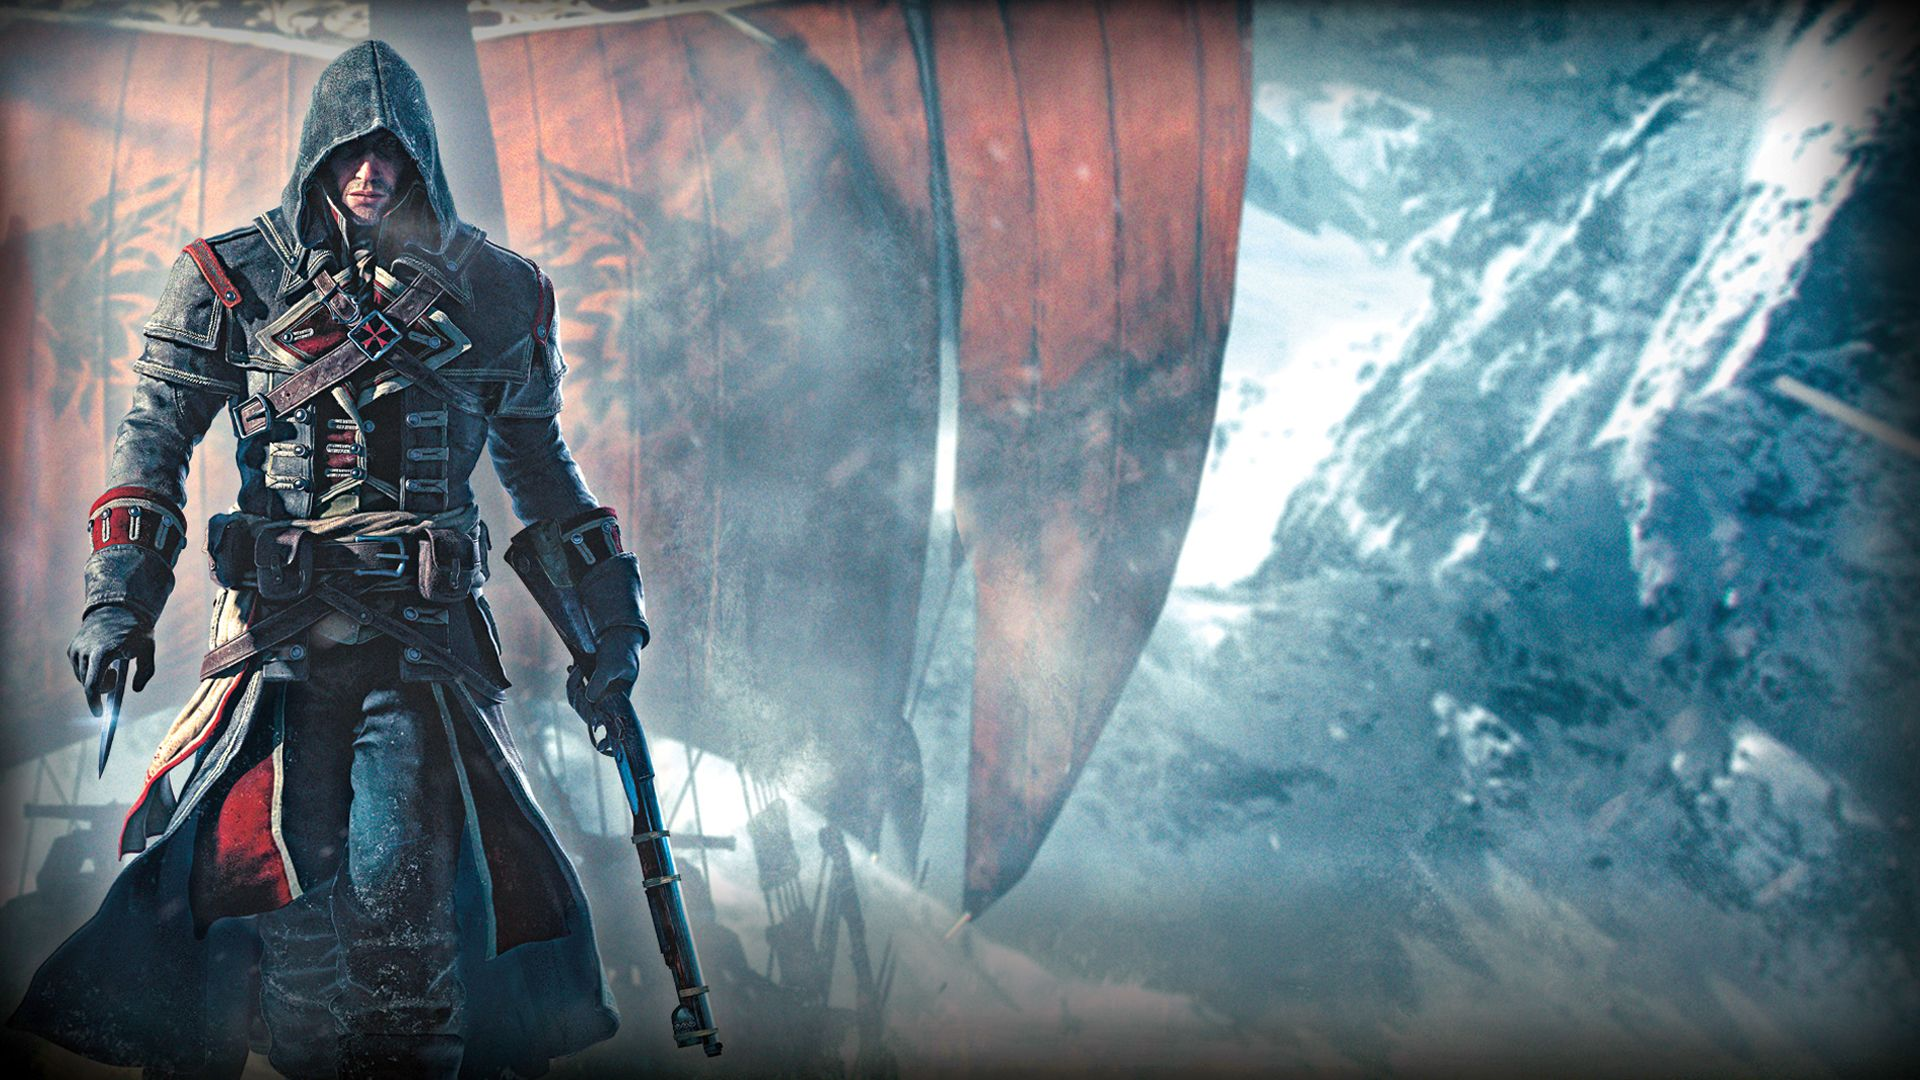 Video Game Assassin S Creed Rogue Assassin S Creed Rogue